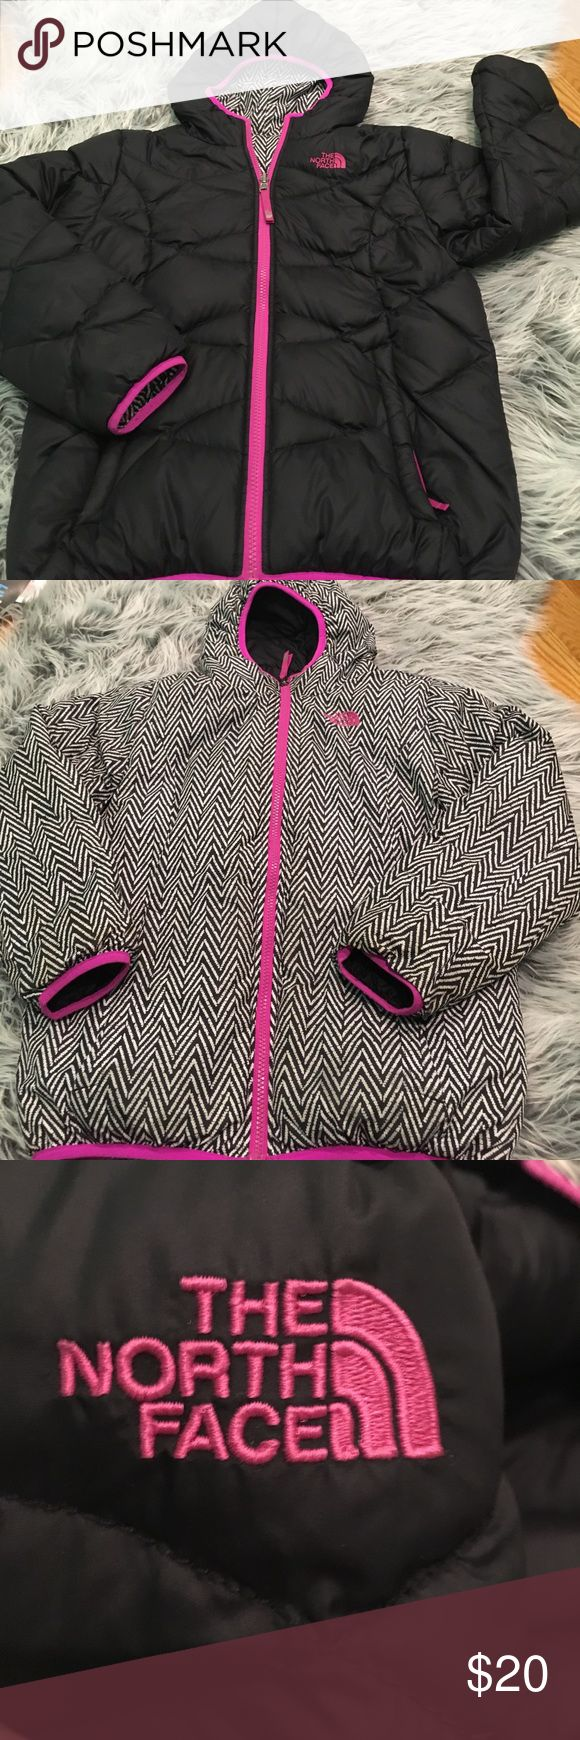 Girls north face jacket! Very good condition, reversible jacket... this is very warm and nice!! The North Face Jackets & Coats Puffers